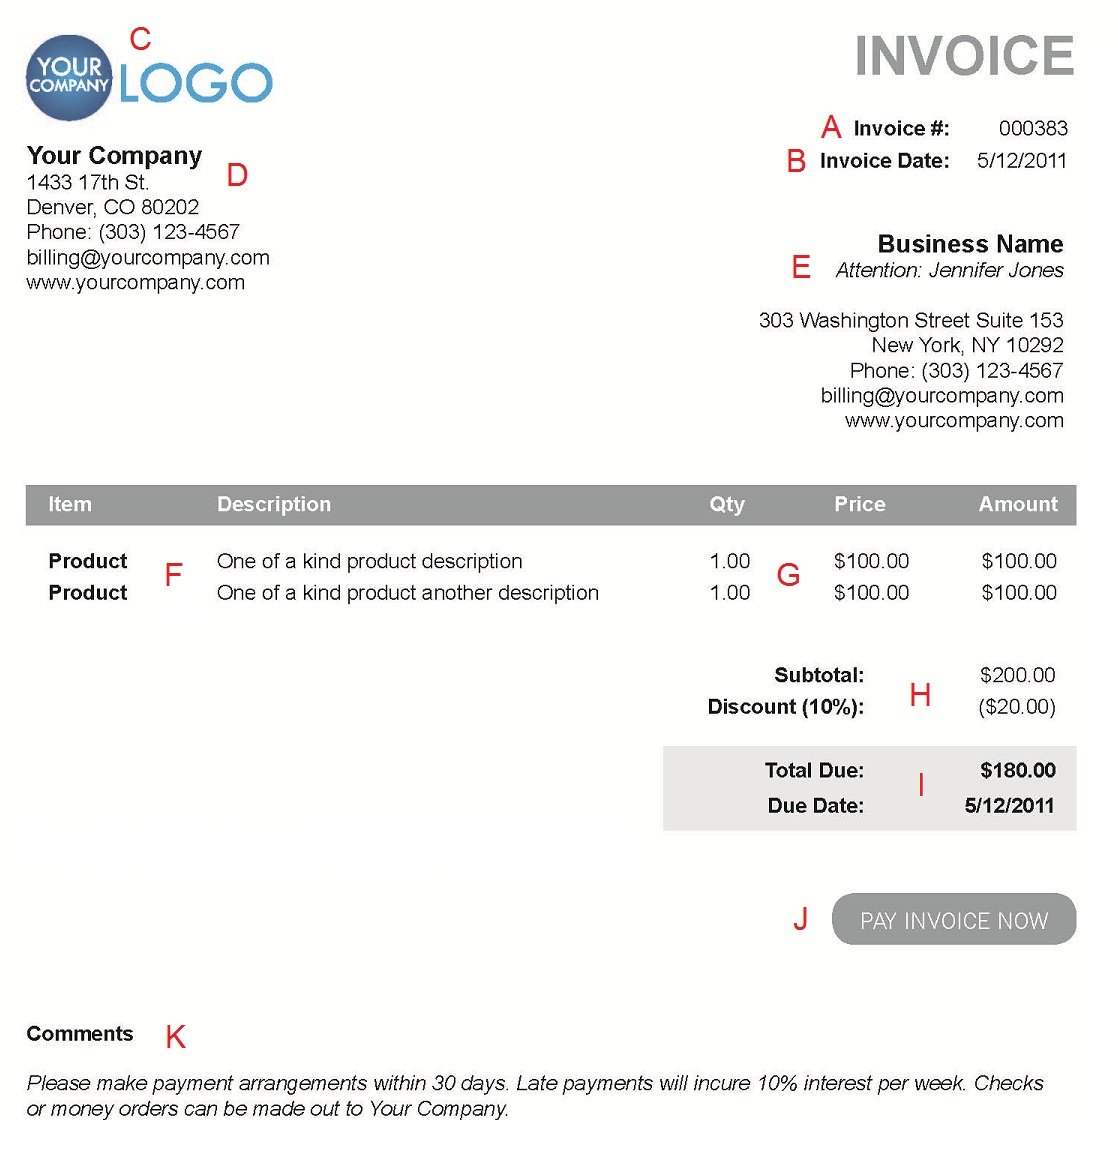 Gpwaus  Stunning The  Different Sections Of An Electronic Payment Invoice With Interesting A  With Extraordinary Meaning Of Invoicing Also  Lexus Rx  Invoice Price In Addition Invoice Contract Template And Debt Collection Letters For Unpaid Invoices As Well As Invoice Financing Uk Additionally Ltd Company Invoice Template From Paysimplecom With Gpwaus  Interesting The  Different Sections Of An Electronic Payment Invoice With Extraordinary A  And Stunning Meaning Of Invoicing Also  Lexus Rx  Invoice Price In Addition Invoice Contract Template From Paysimplecom